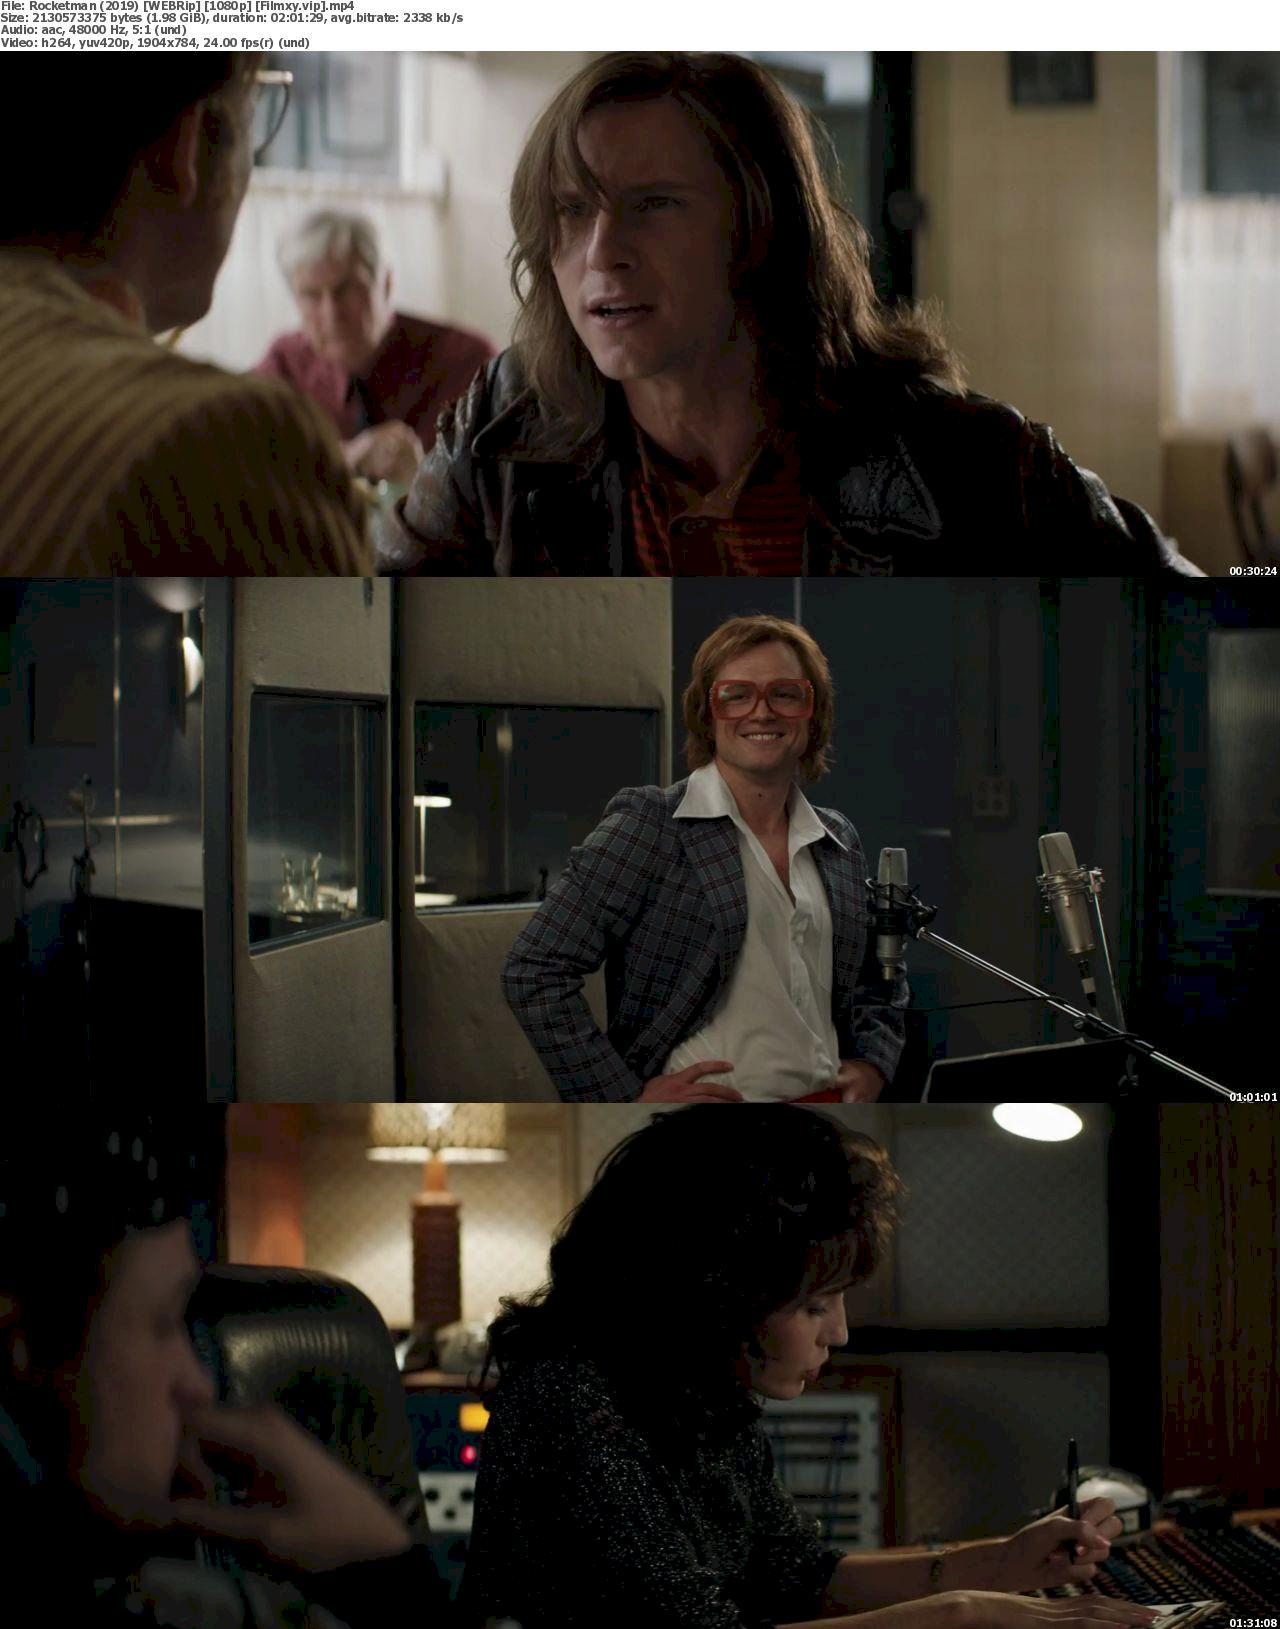 Rocketman (2019) [720p & 1080p] WEB-Rip Free Movie Watch Online & Download 1080p Screenshot